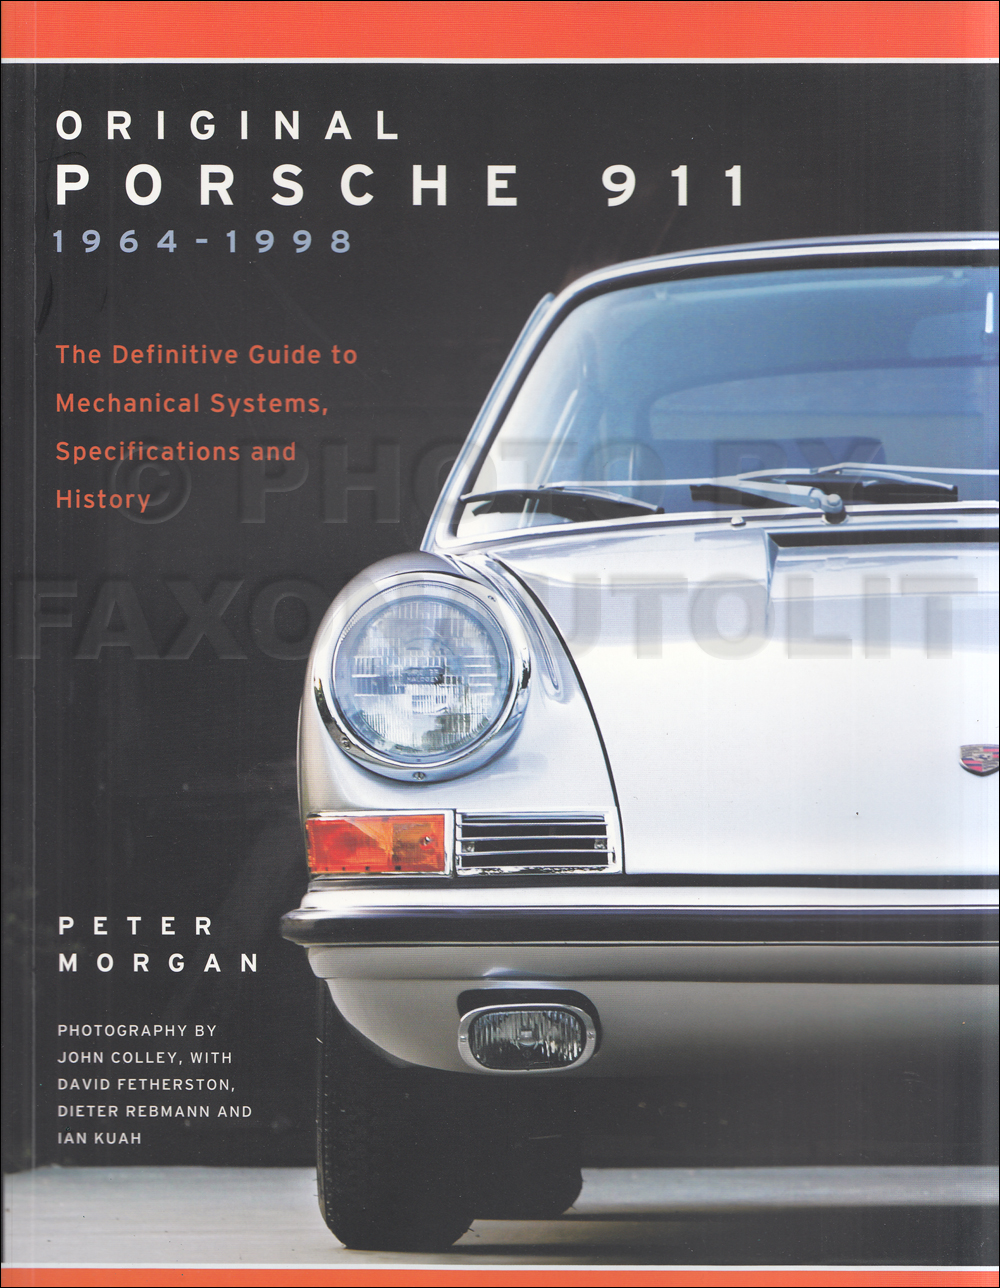 1995 1998 Porsche 911 Carrera Bentley Repair Shop Manual 993 Complete Electrical Wiring Diagram Of Type 912 1964 Original Definitive Guide To Mechanical Systems Specs And